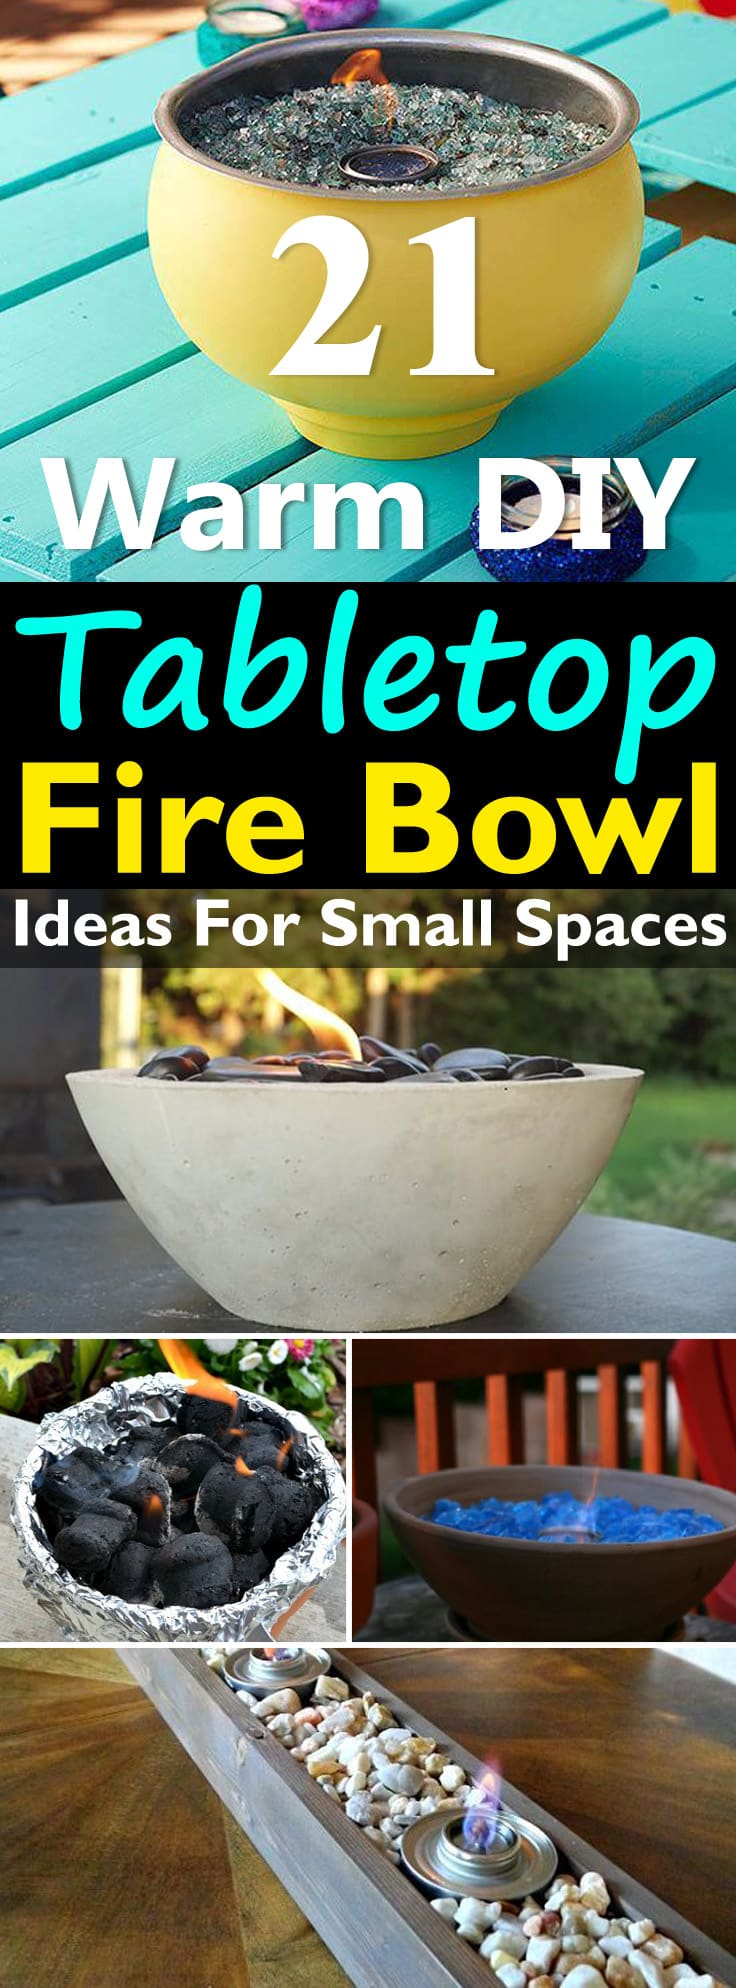 You can create your own nice little fire pits that are warm, portable and suitable for urban dwellers, following these 21 DIY Tabletop Fire Bowl Ideas!